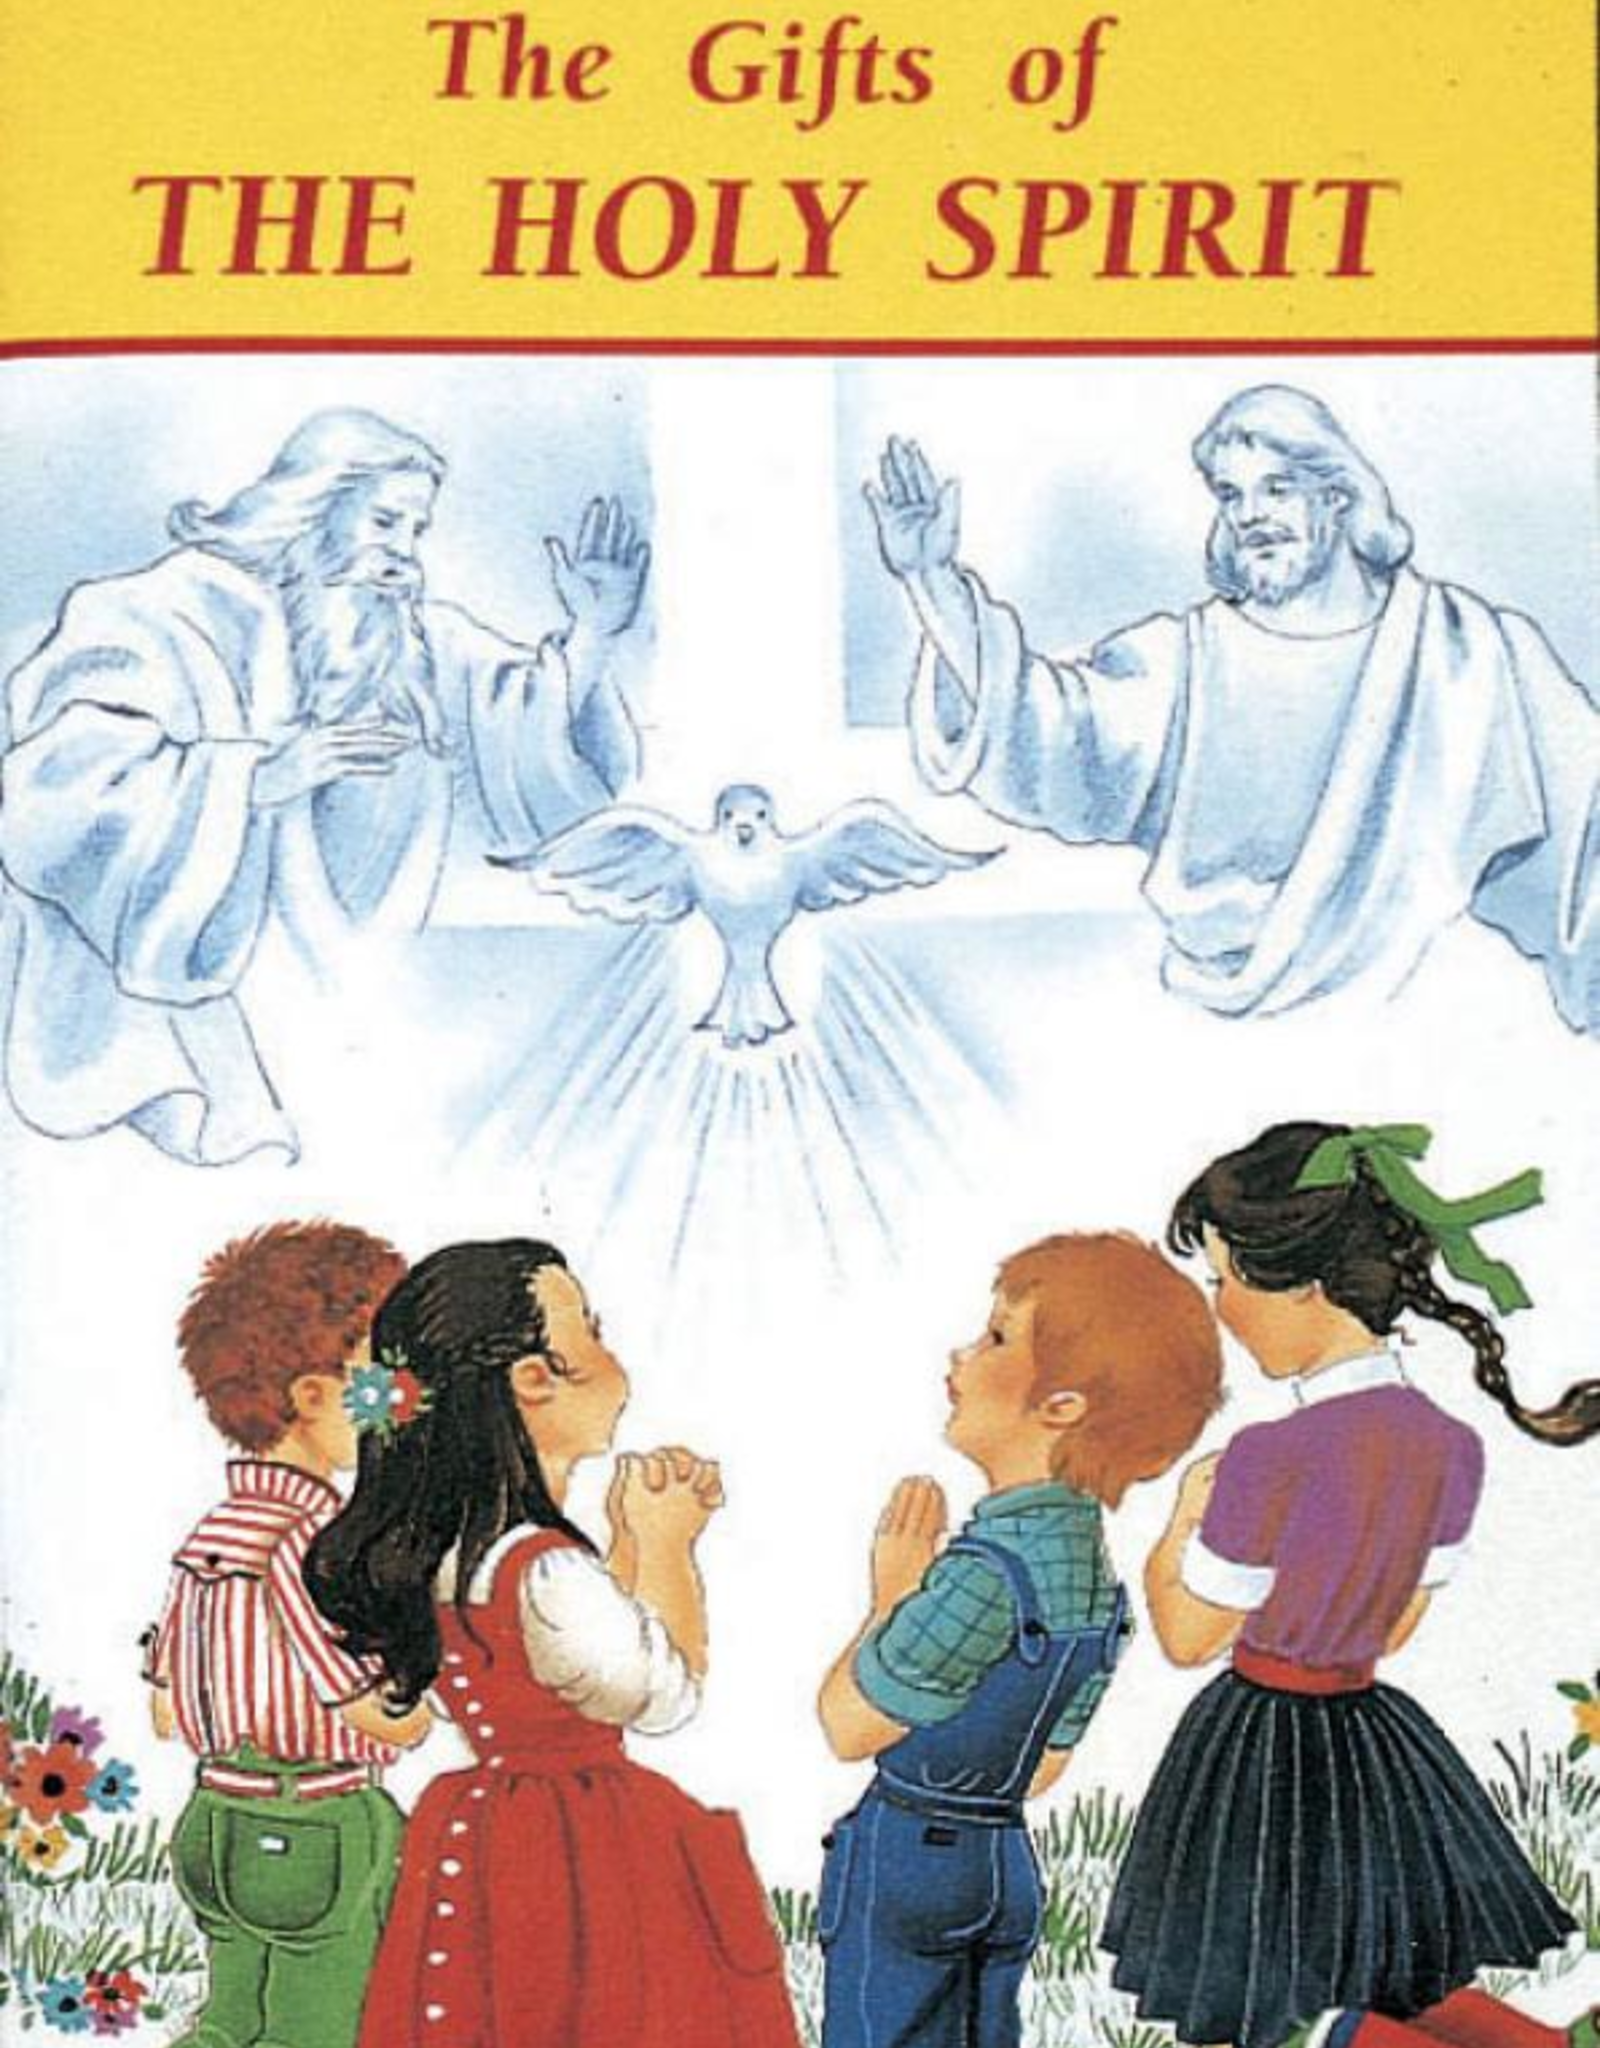 Catholic Book Publishing The Gifts of the Holy Spirit, by Rev. Jude Winkler (paperback)